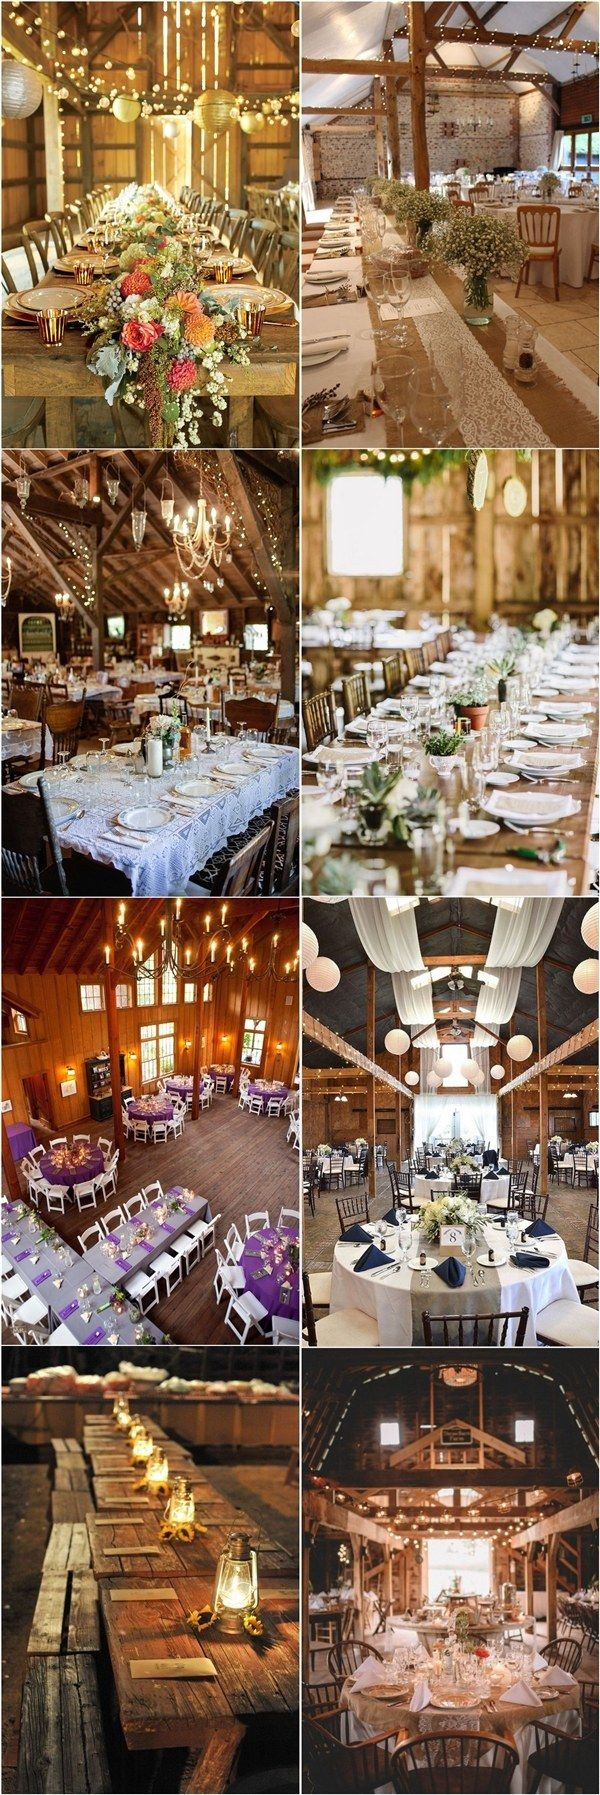 ideas for rustic wedding reception%0A    best Marquee Wedding Ideas images on Pinterest   Entertaining  Fairies  and Lanterns